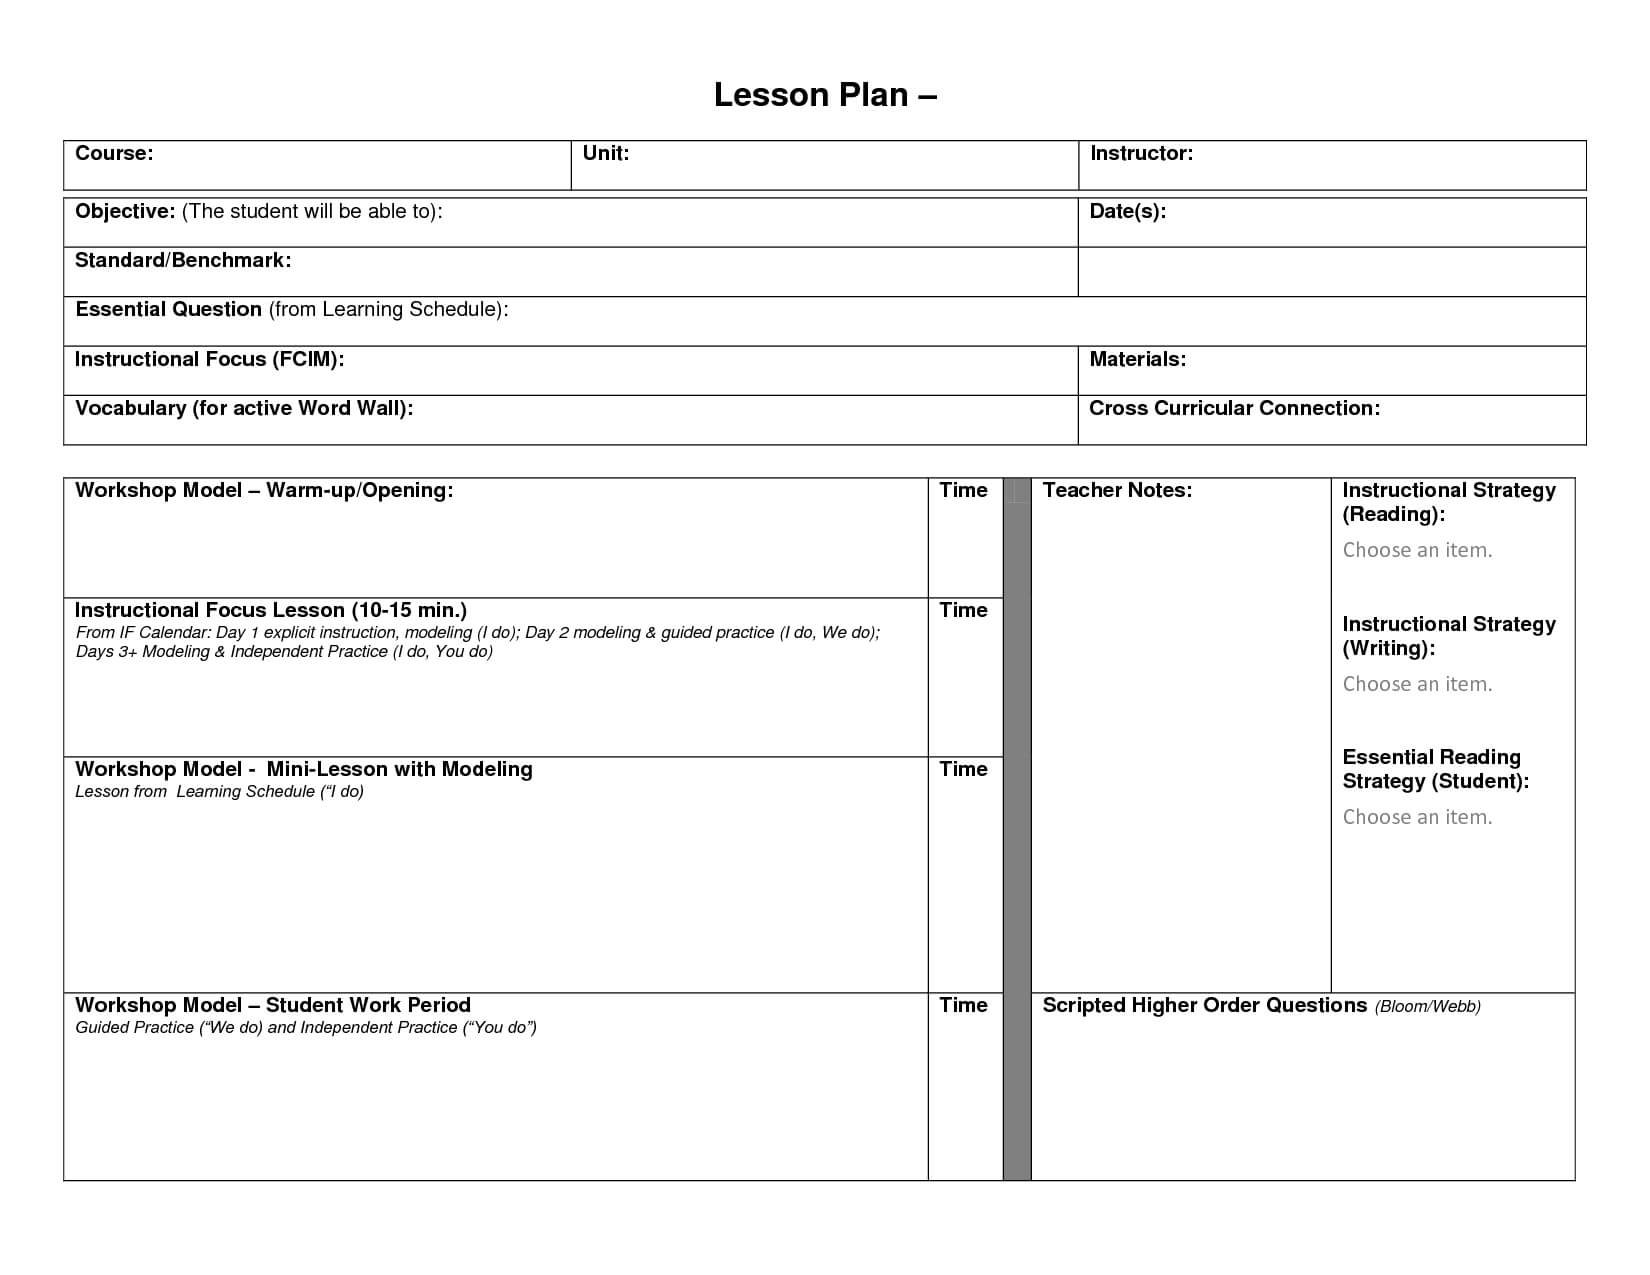 Blank Lesson Plan Format Template | Blank Lesson Template Pertaining To Blank Unit Lesson Plan Template